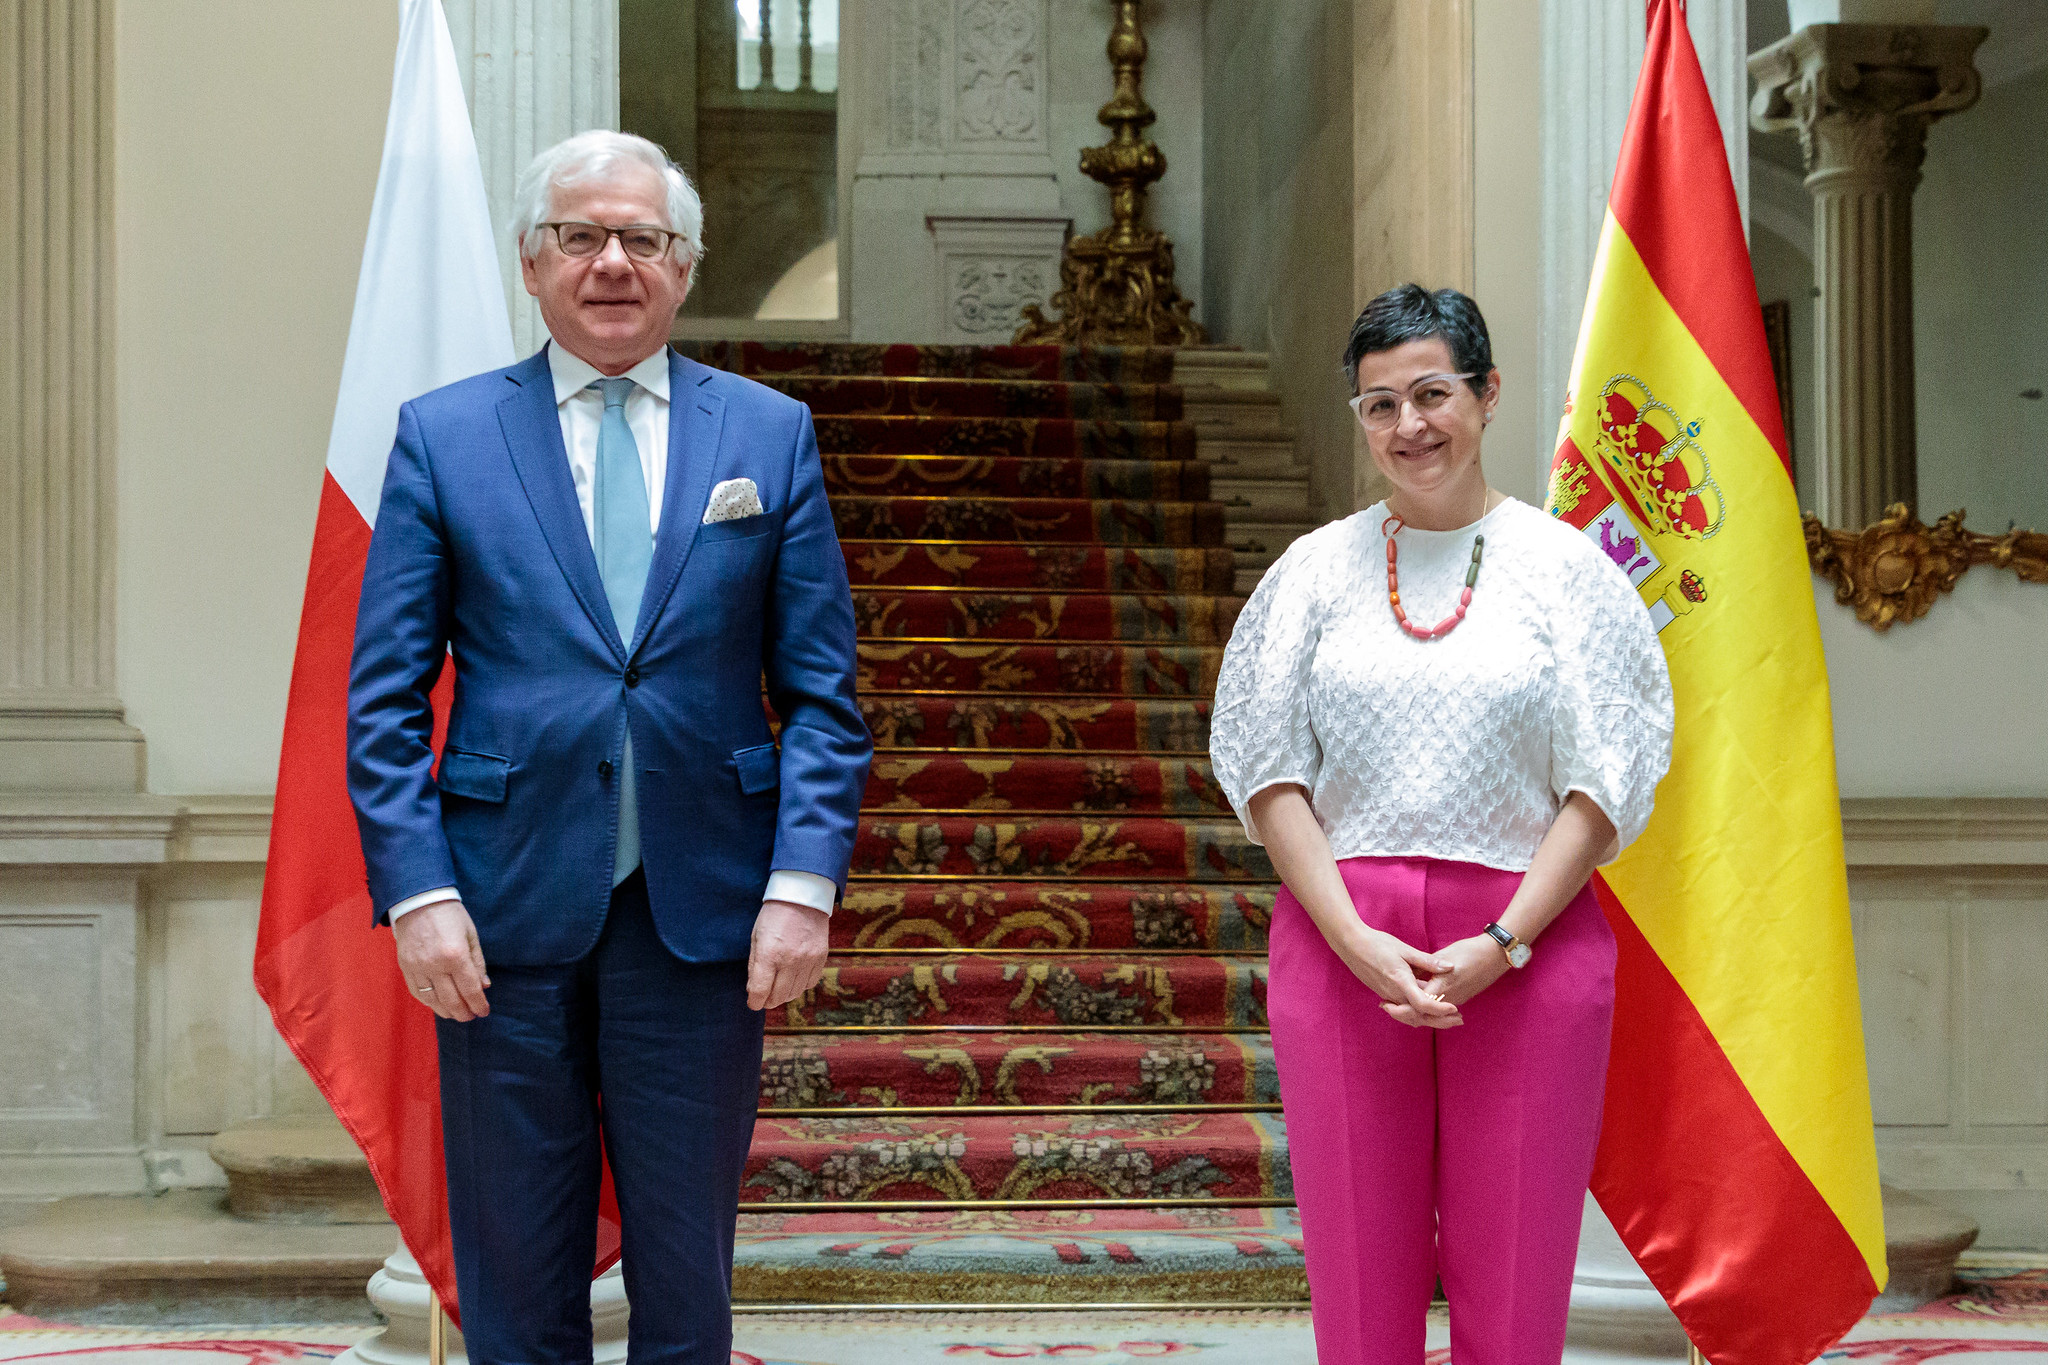 WI Daily News – Polish Foreign Minister visited Madrid